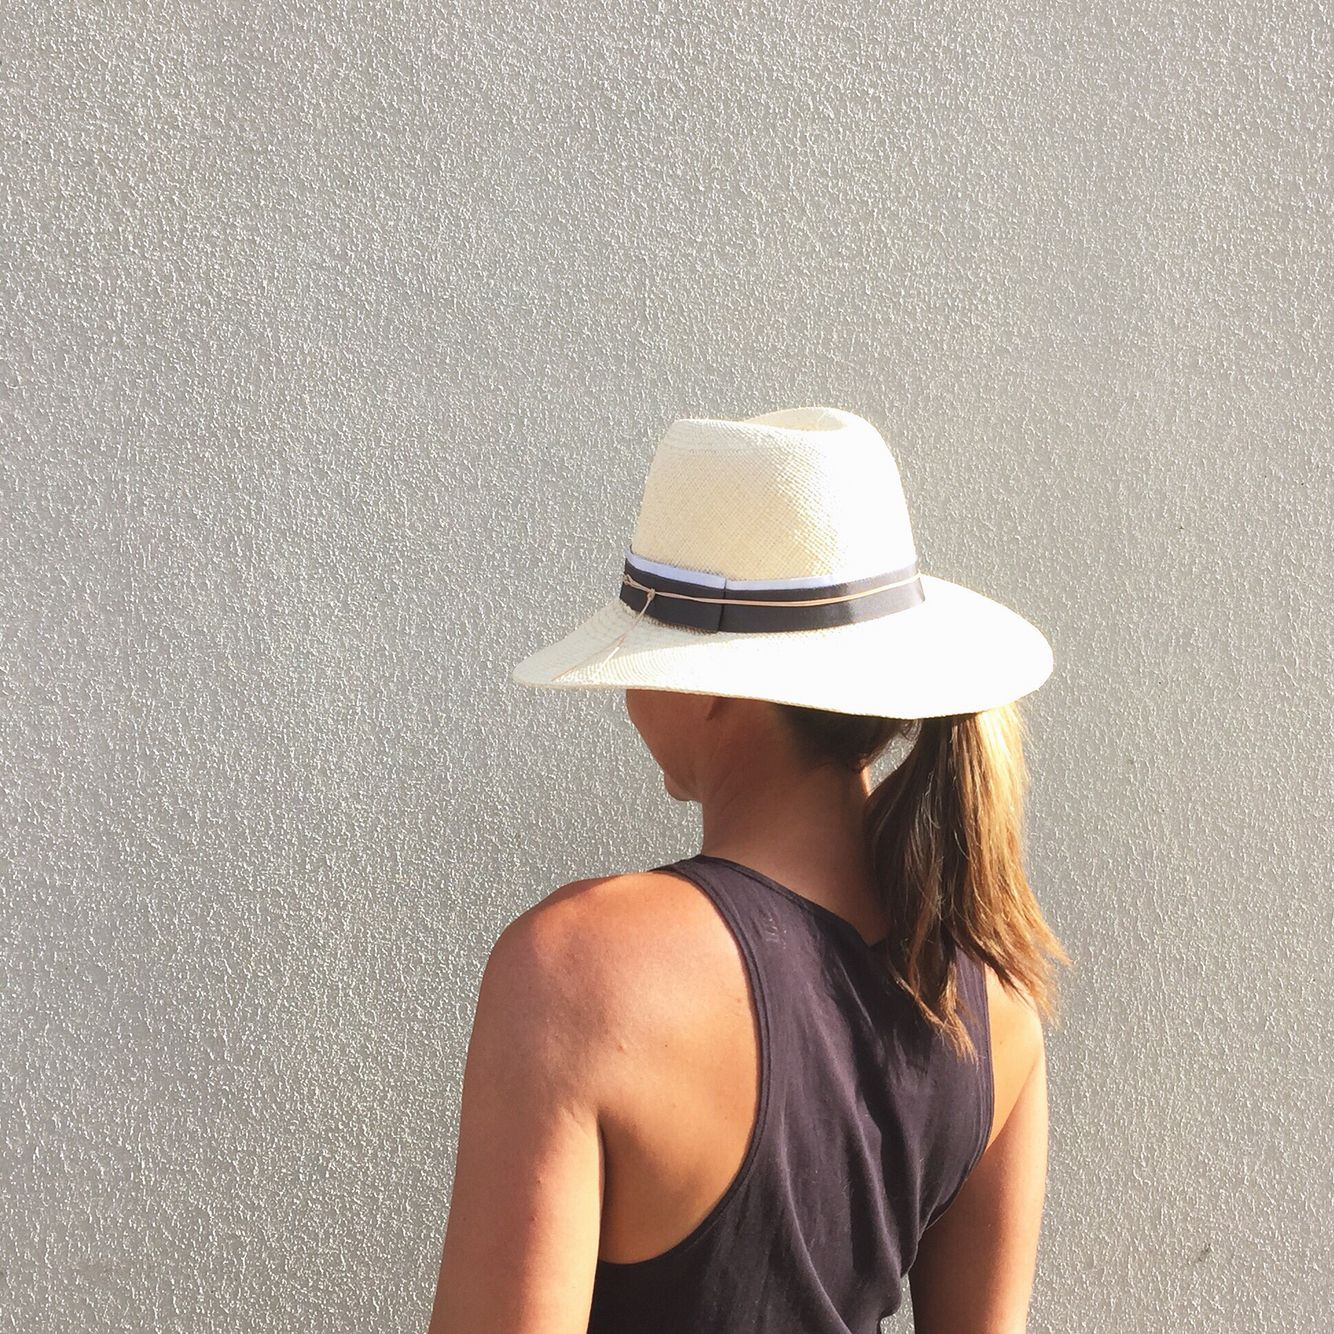 Penelope Haddrill Hats   Hip Digs home + lifestyle  b6cb85415c18